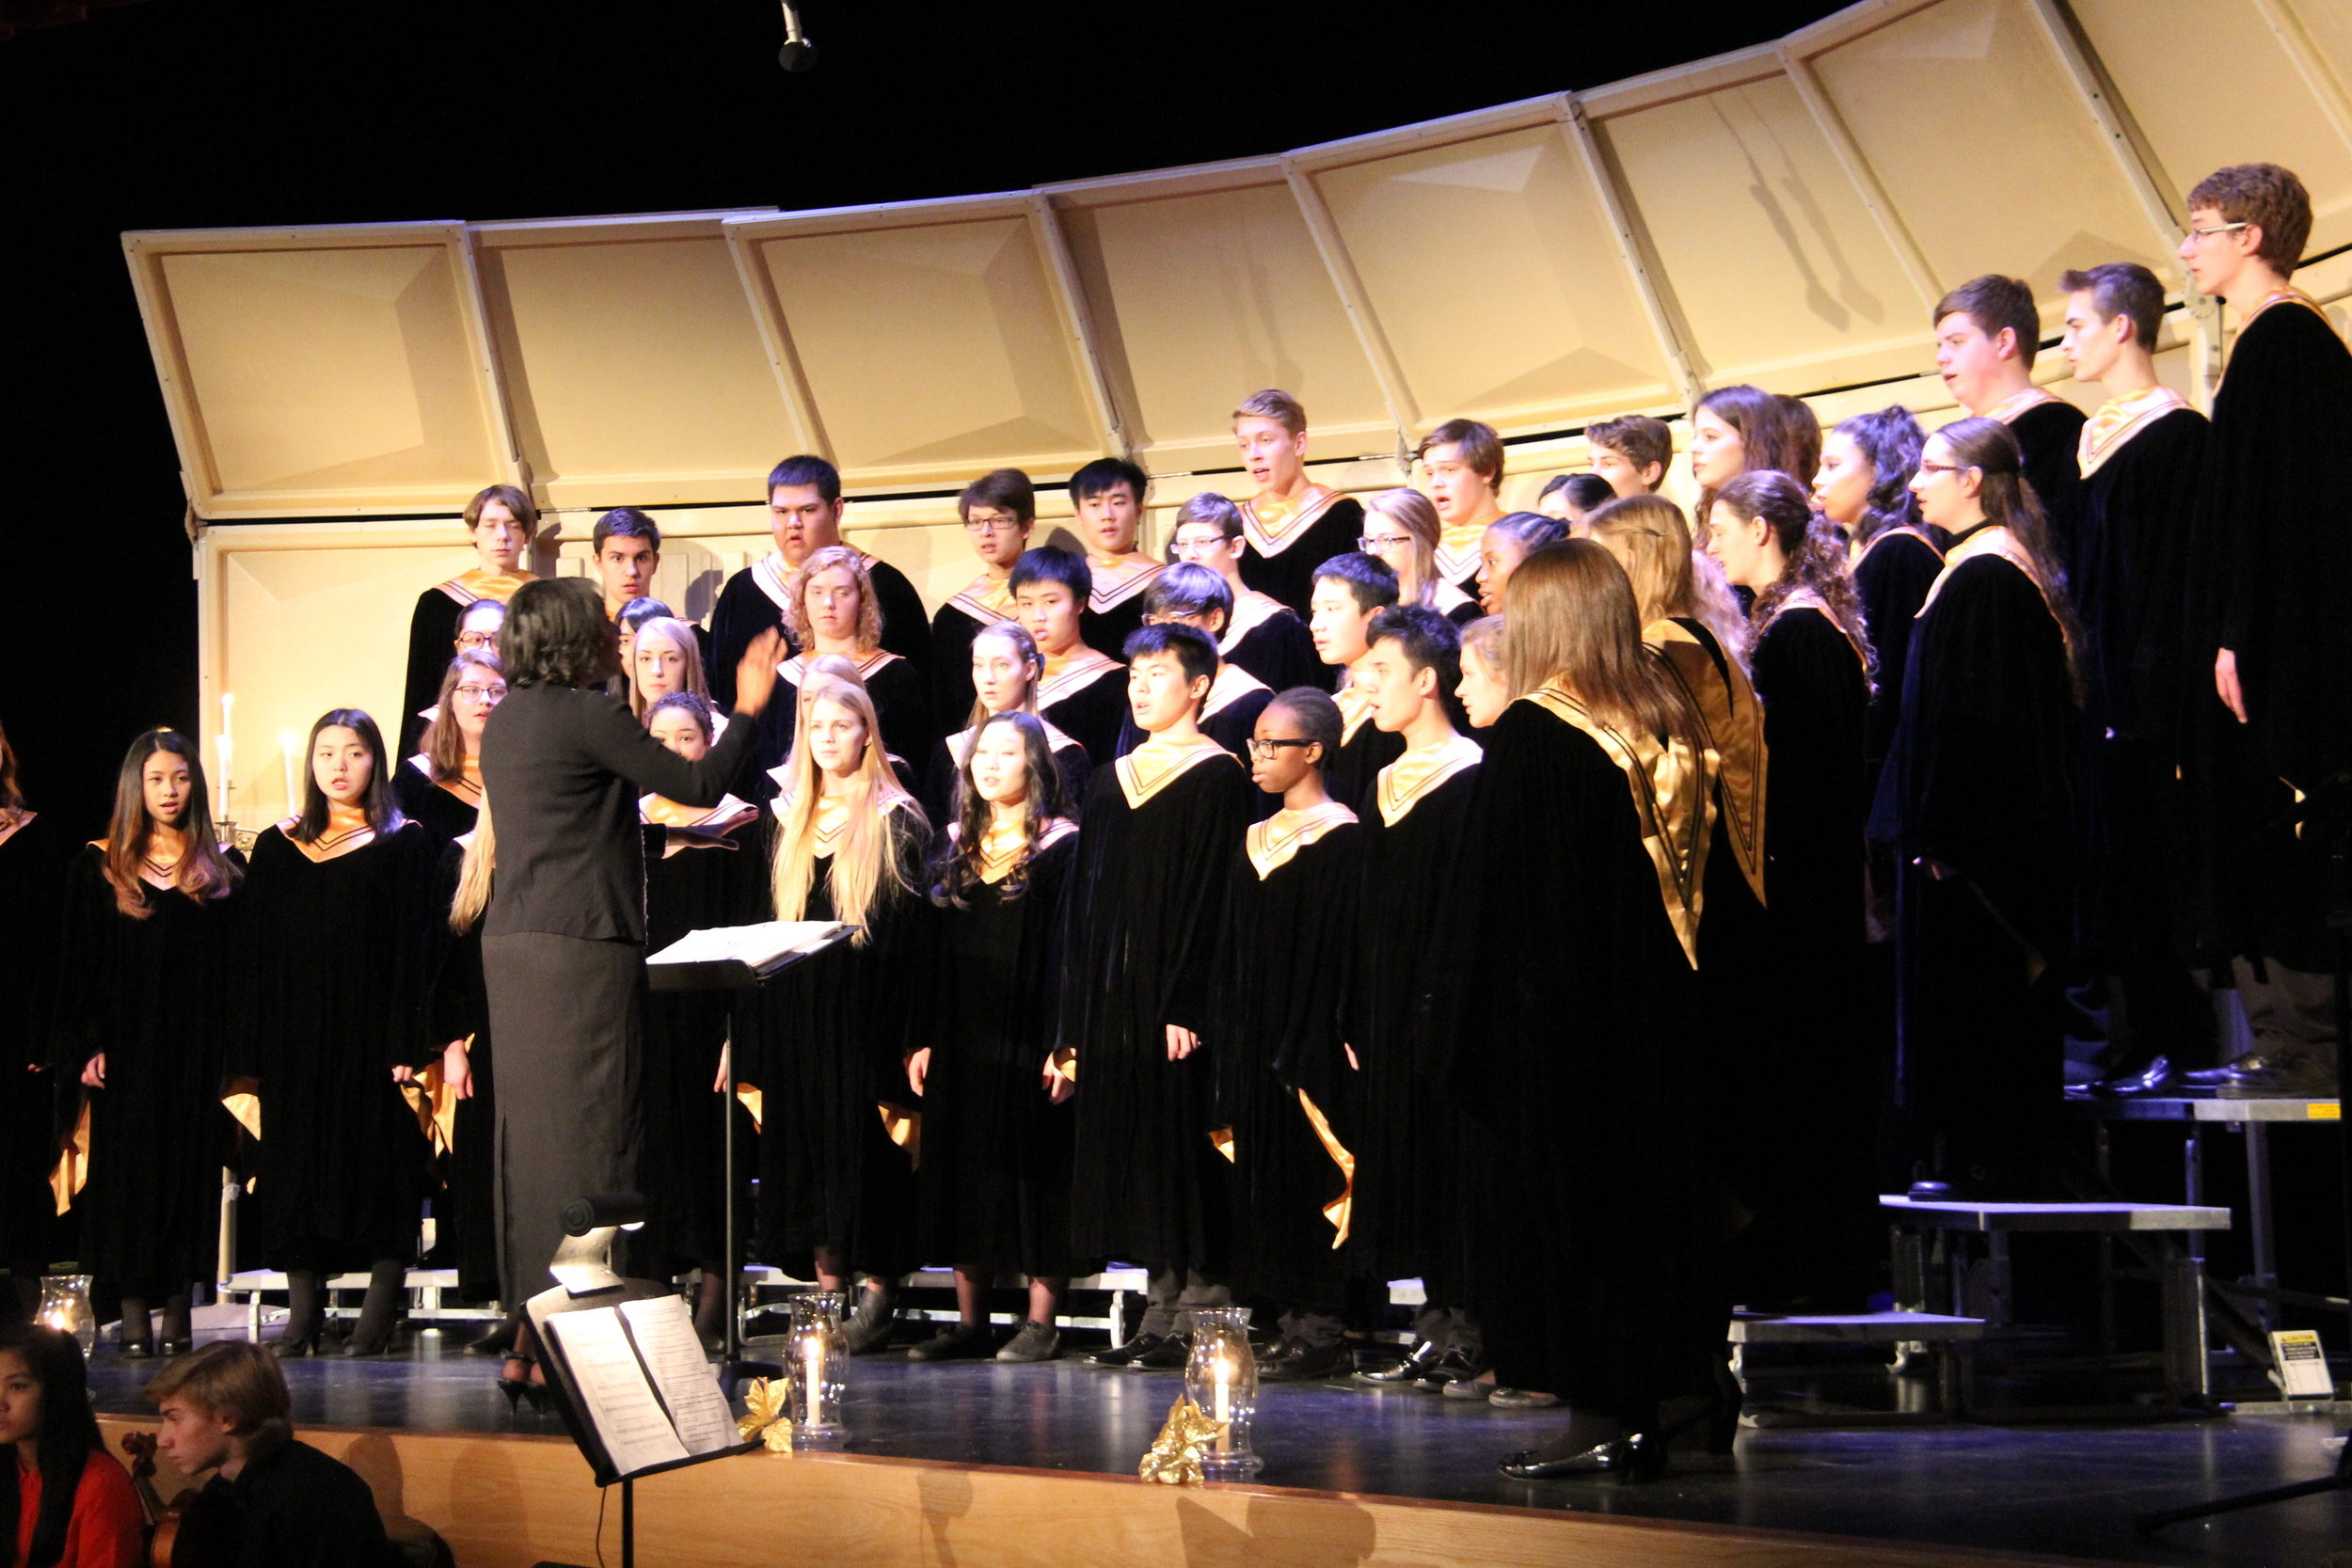 Melissa Morgan conducts the Luther College Senior Choir during their Christmas Candlelight Service. Luther College Belsher Centre, December 2014